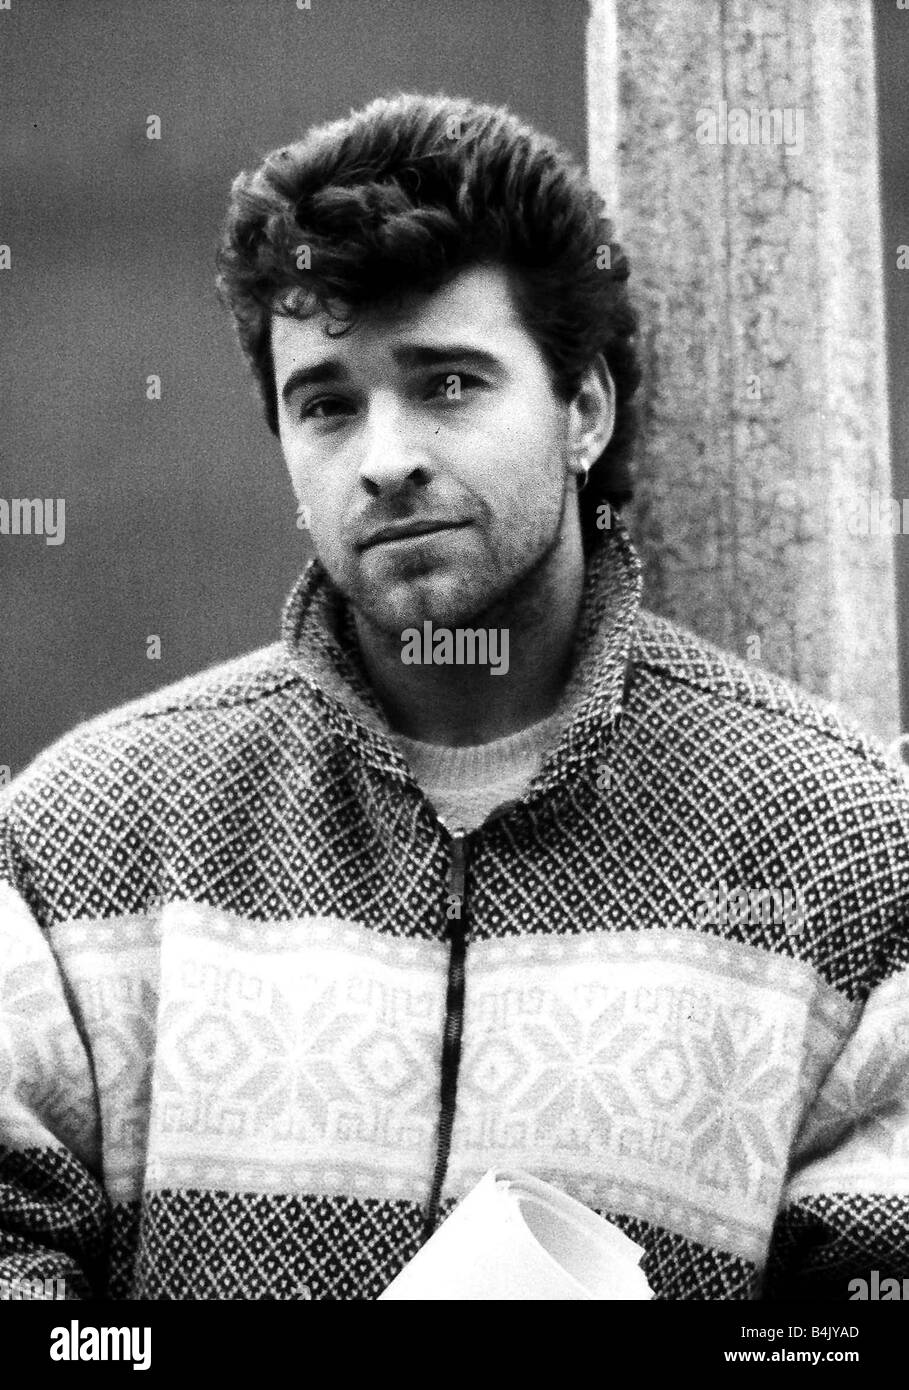 David Easter actor who appeared in Brookside playing Pat Hancock January 1986 Dbase - Stock Image